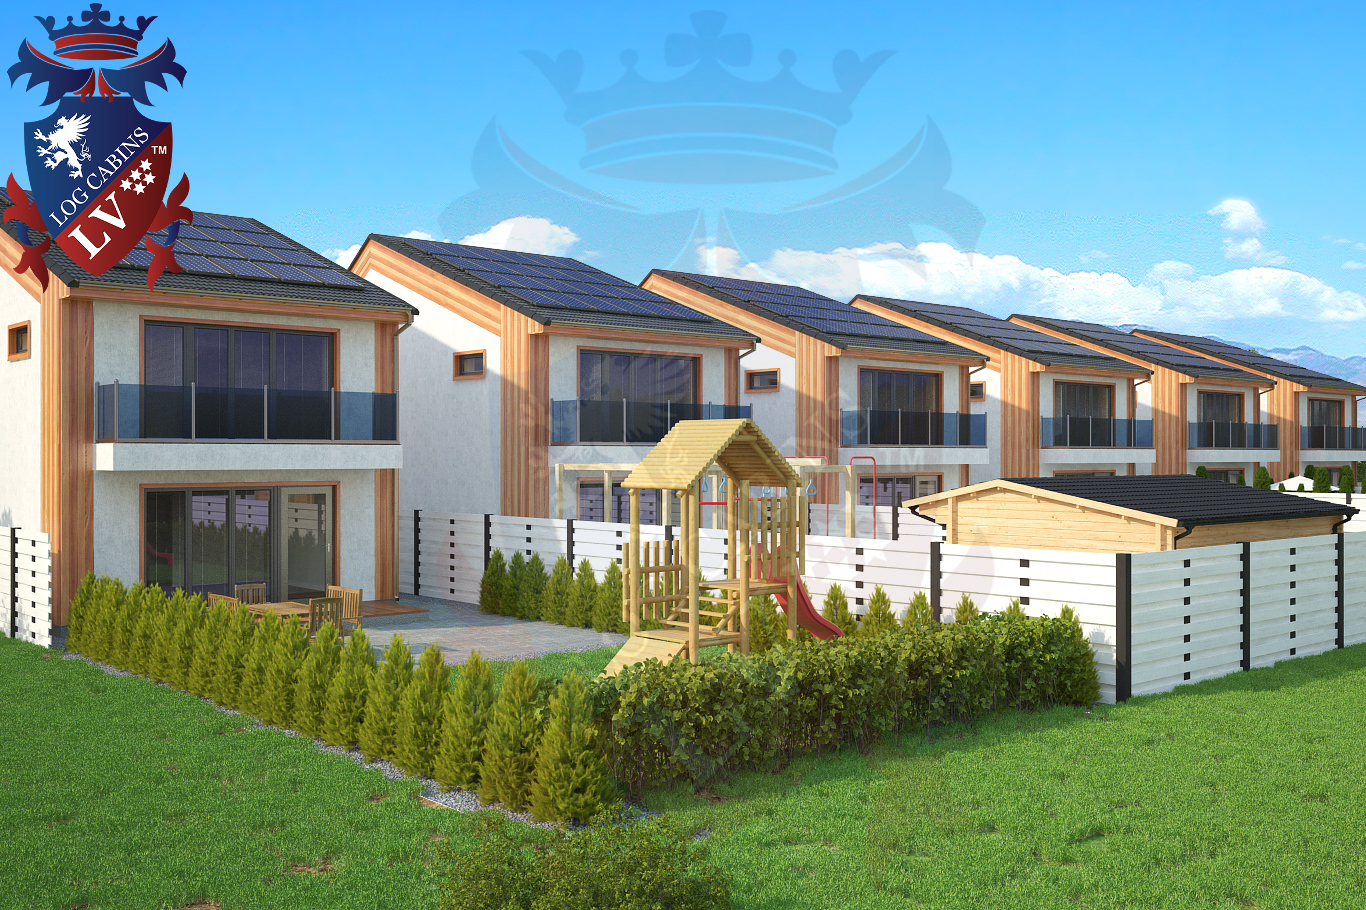 Passive house designs first time buyers homes log for Passive home design